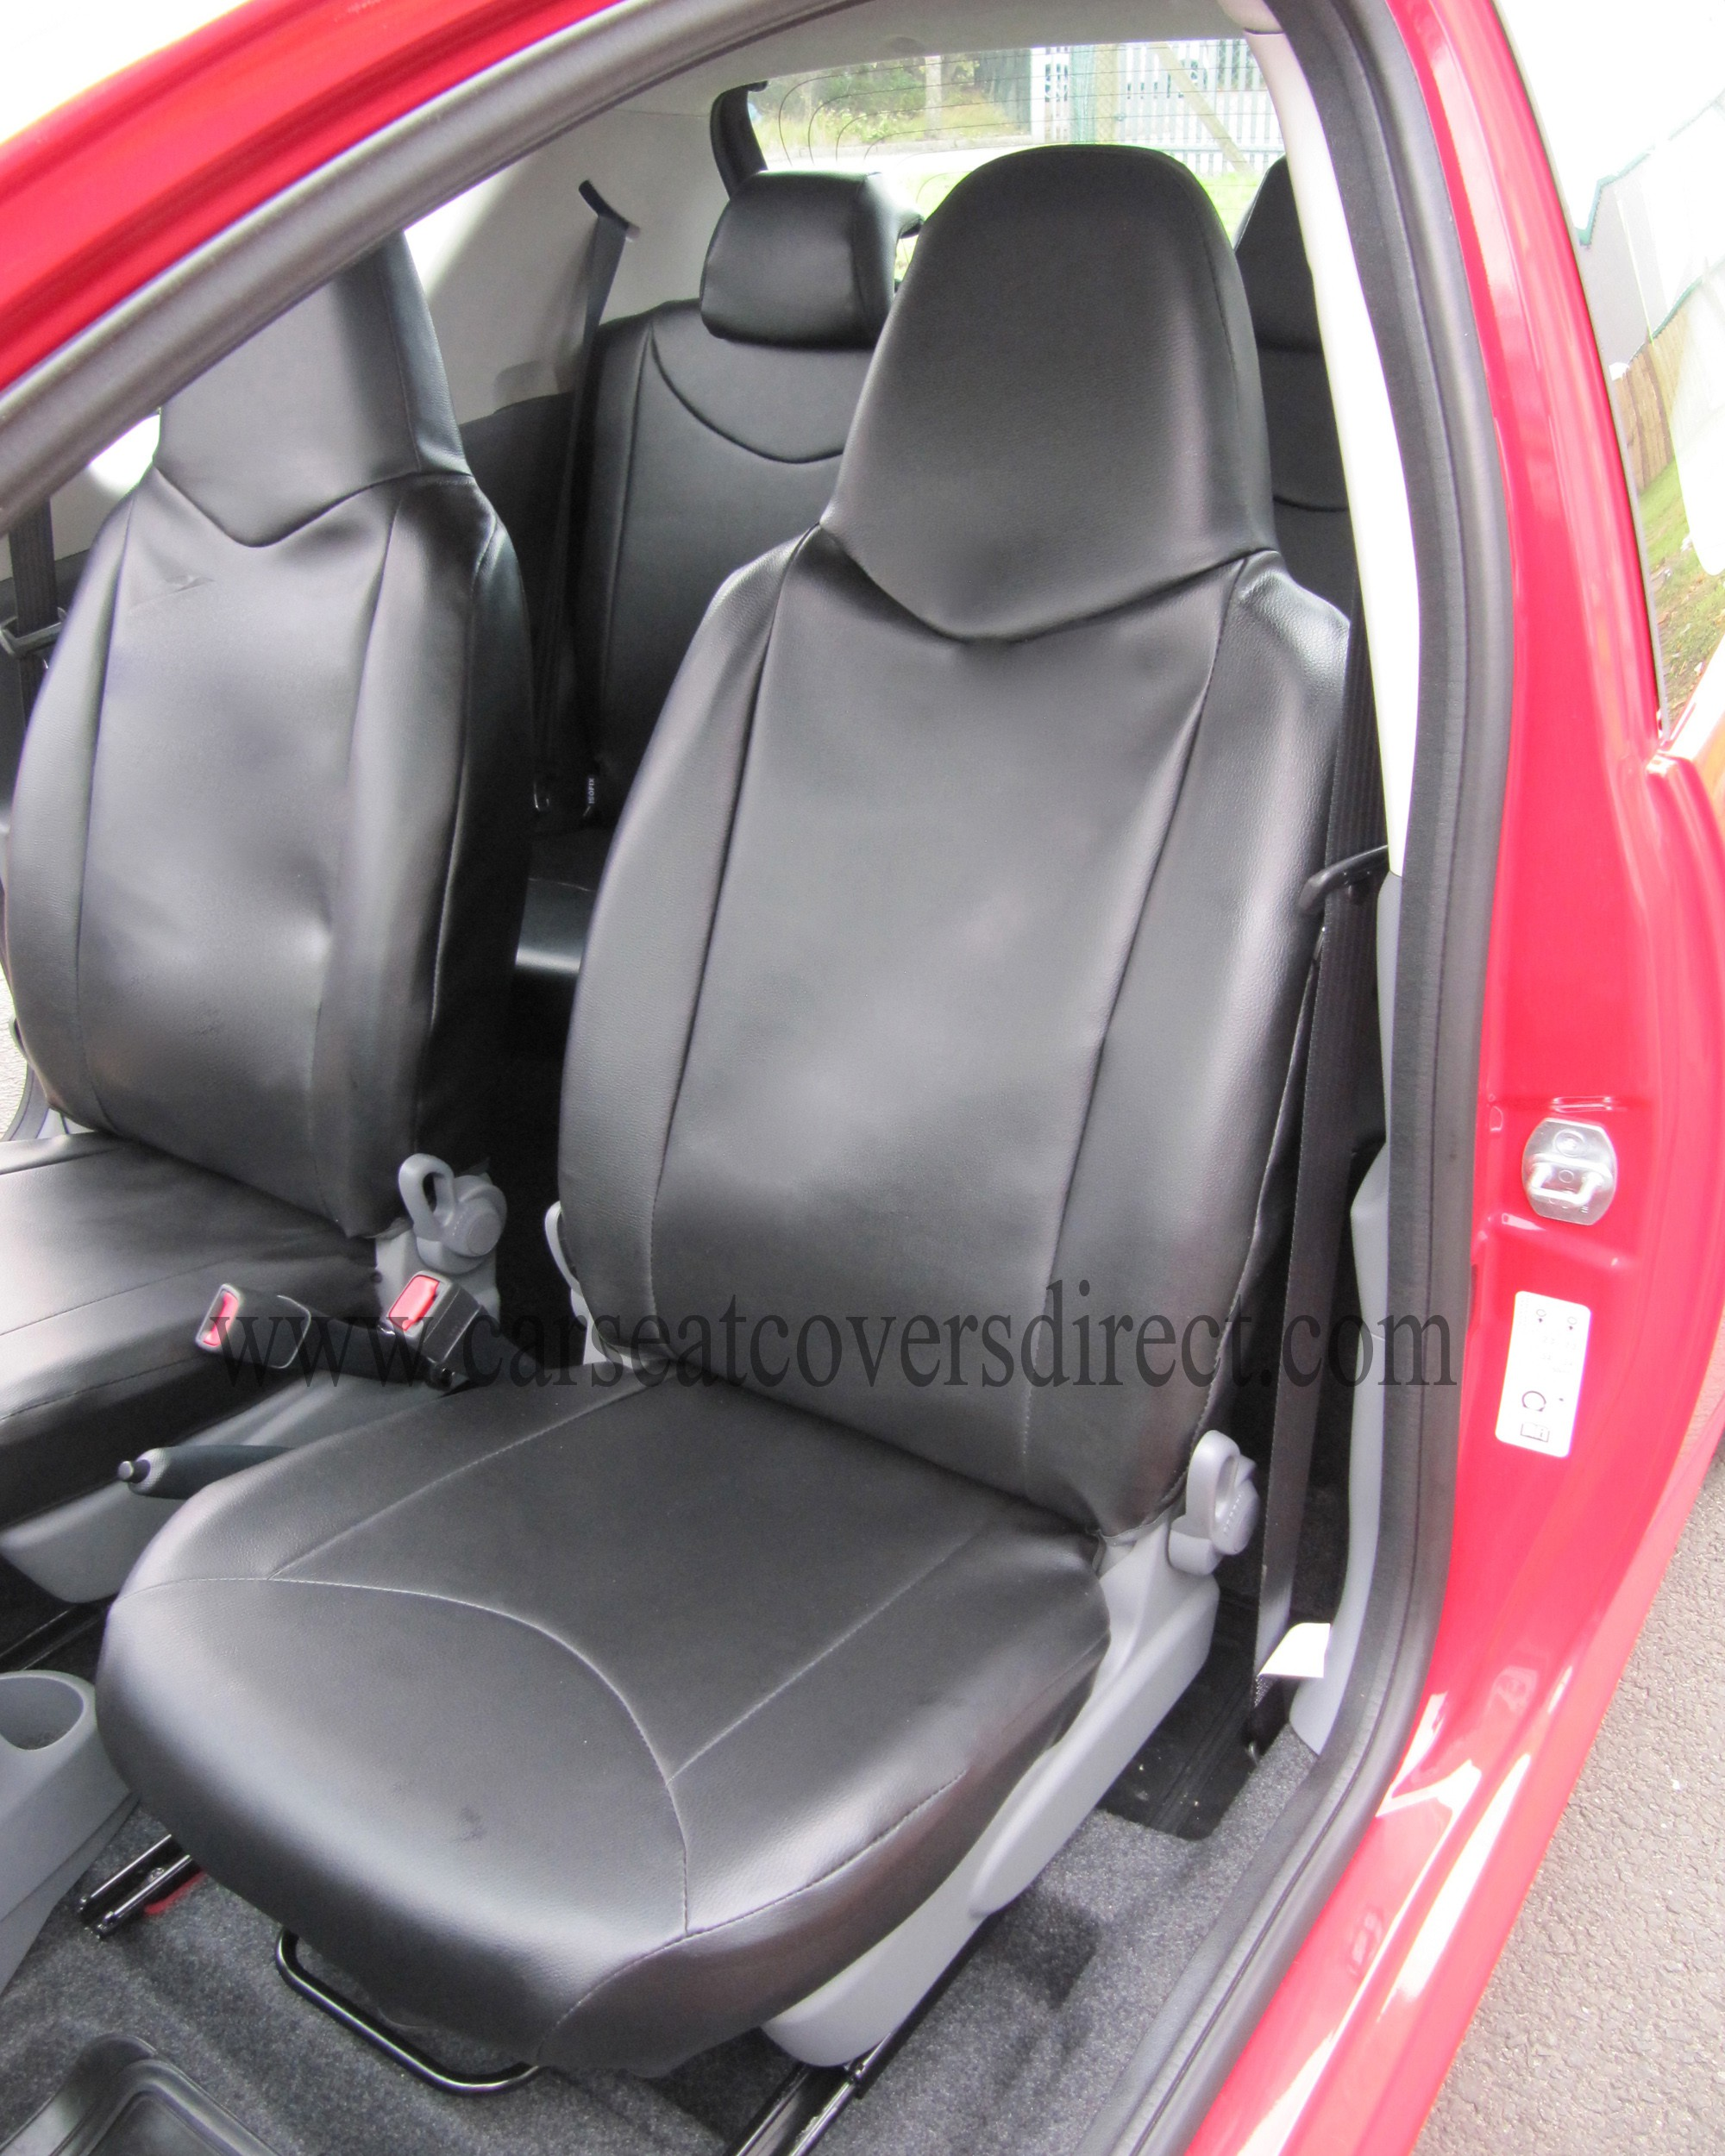 CITROEN C1 seat covers